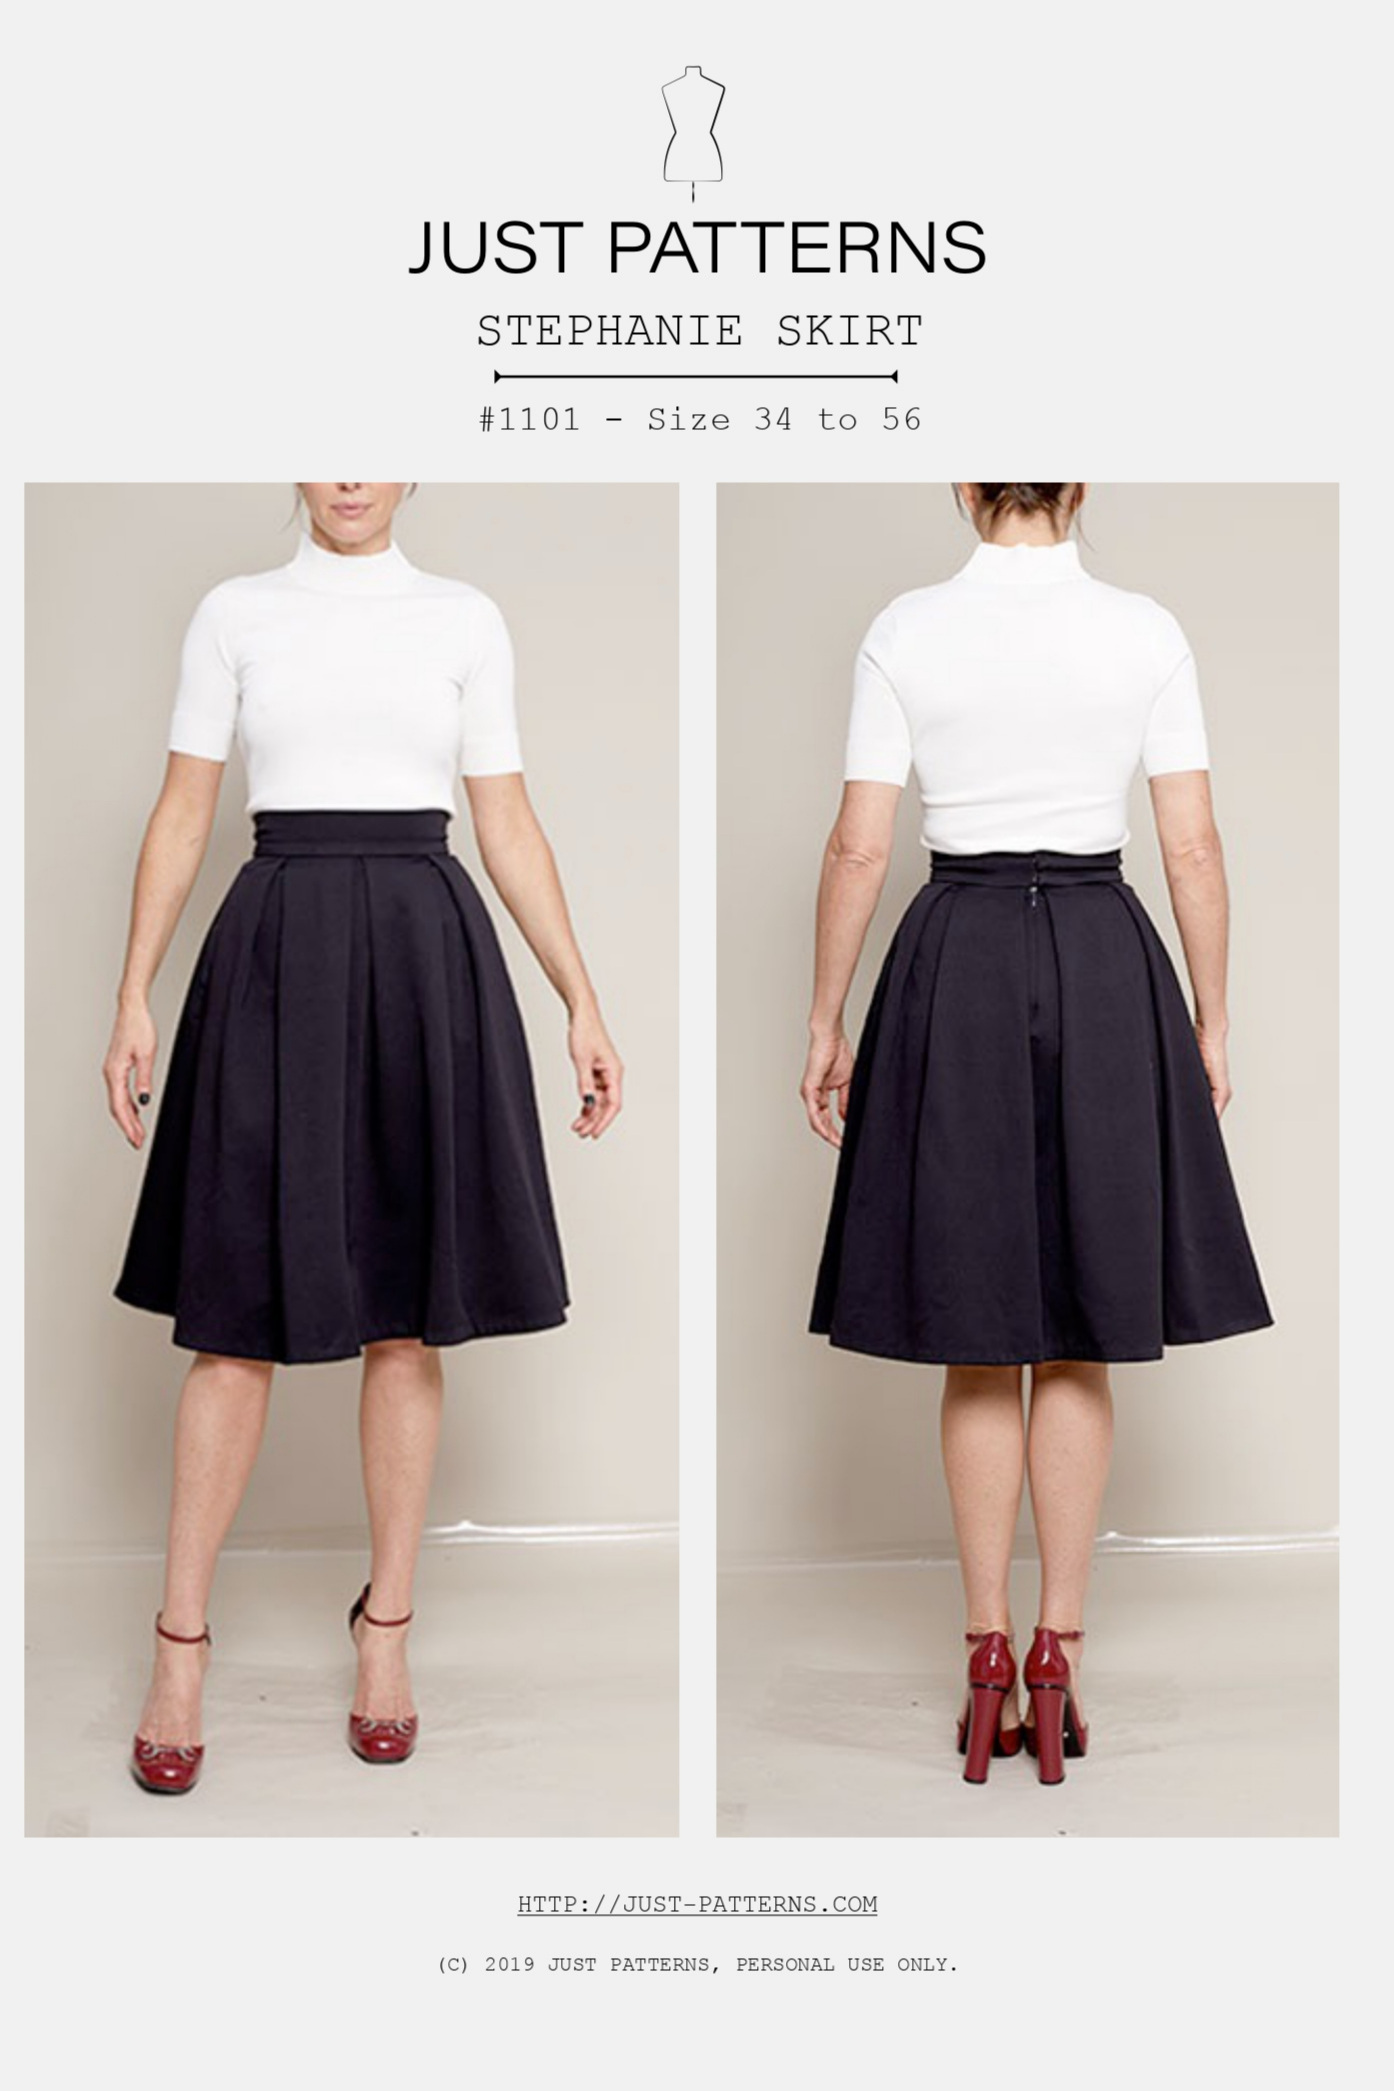 Stephanie Skirt sewing pattern from Just Patterns